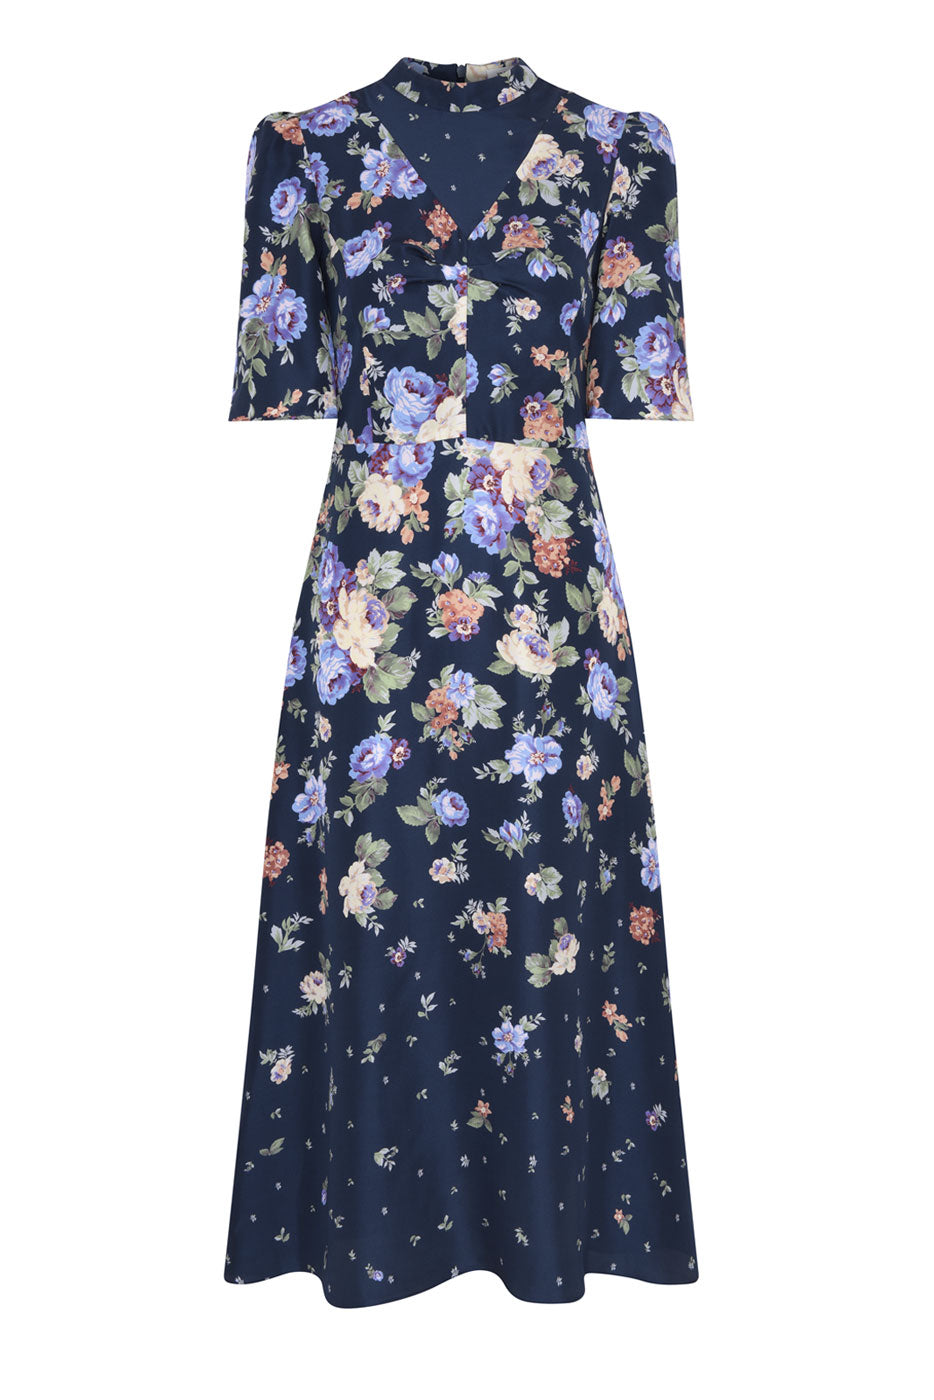 Aubrey Dress Navy